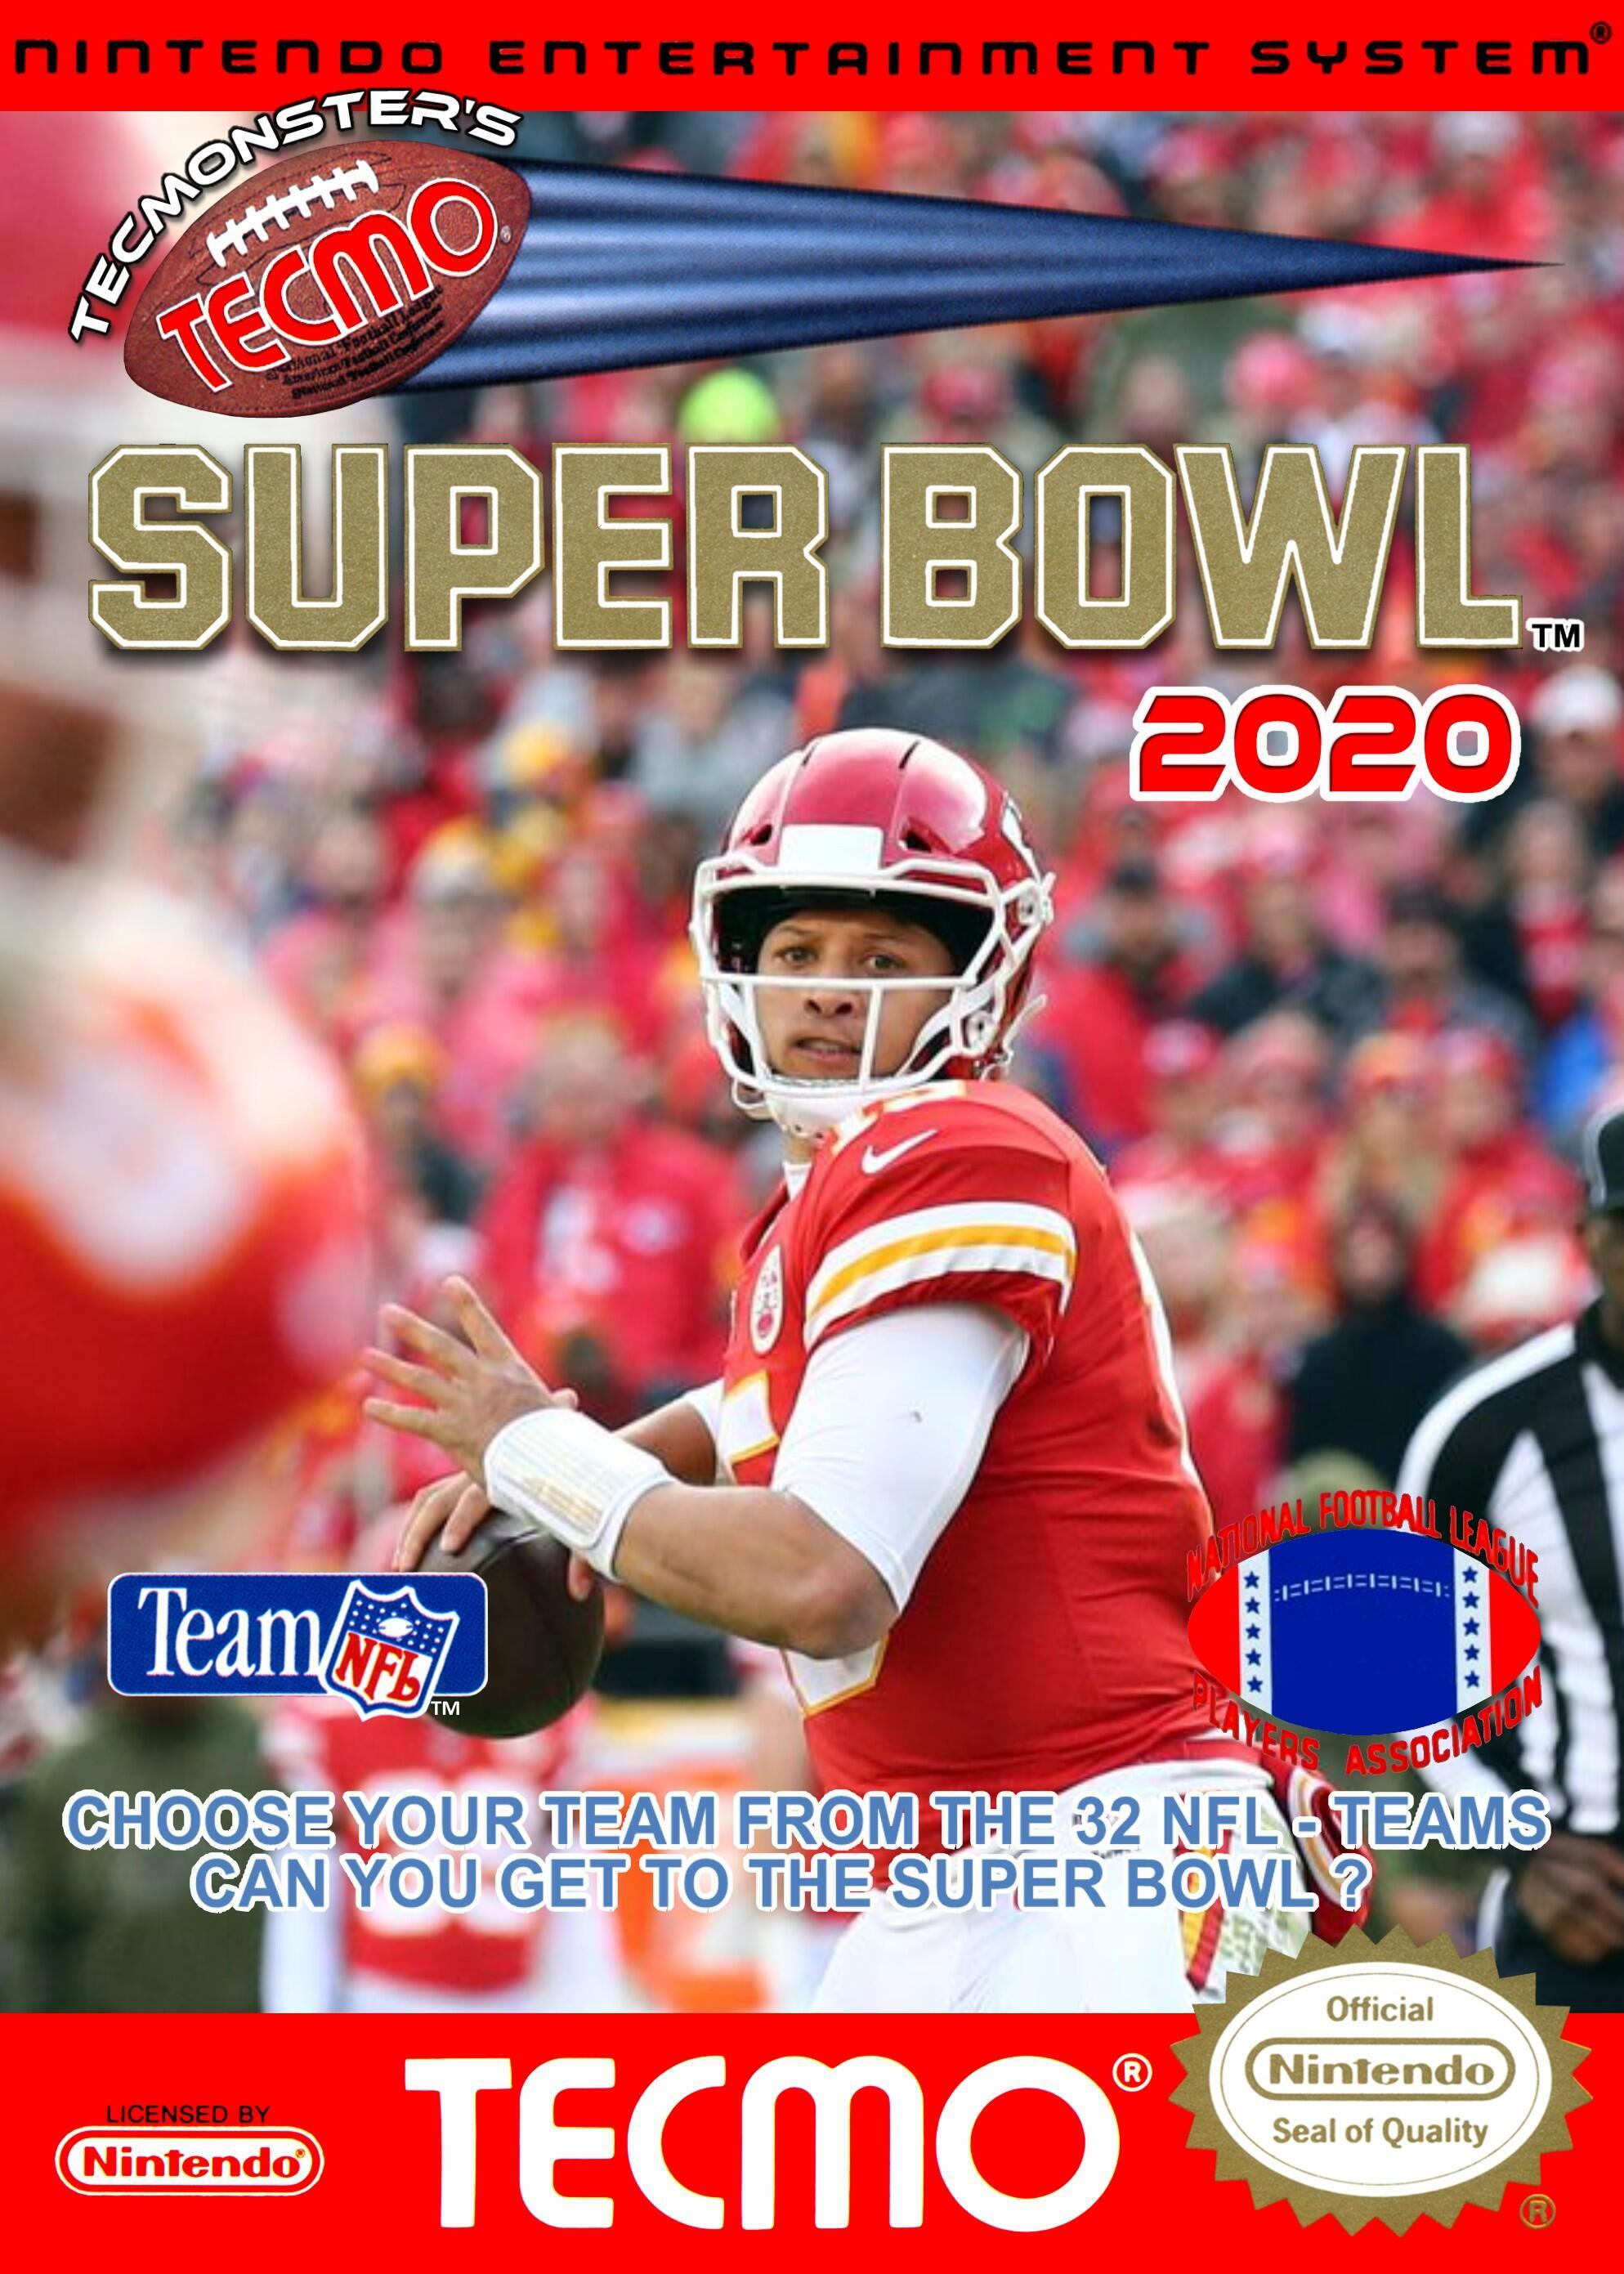 (NES) Tecmonster's Tecmo Super Bowl 2020